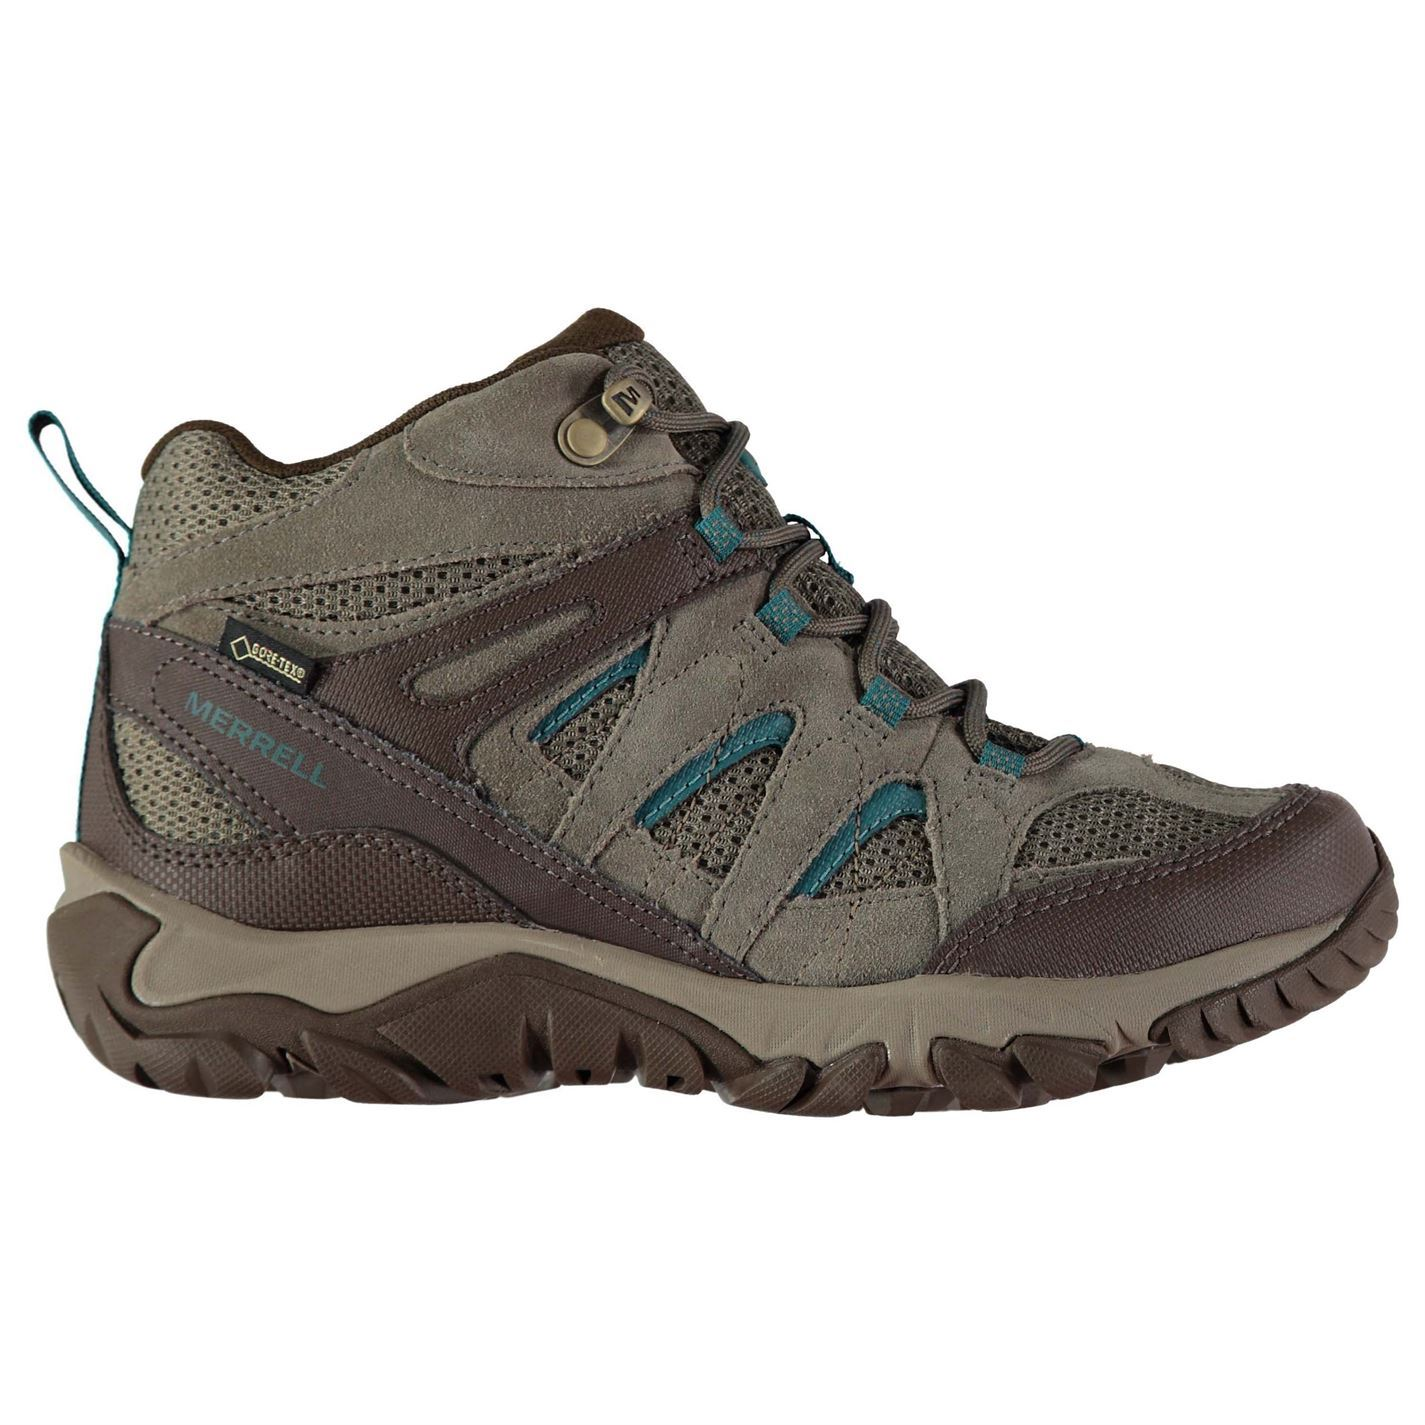 Details about Merrell Outmost Vent Gore Tex Walking Boots Womens Hiking Trekking Shoes